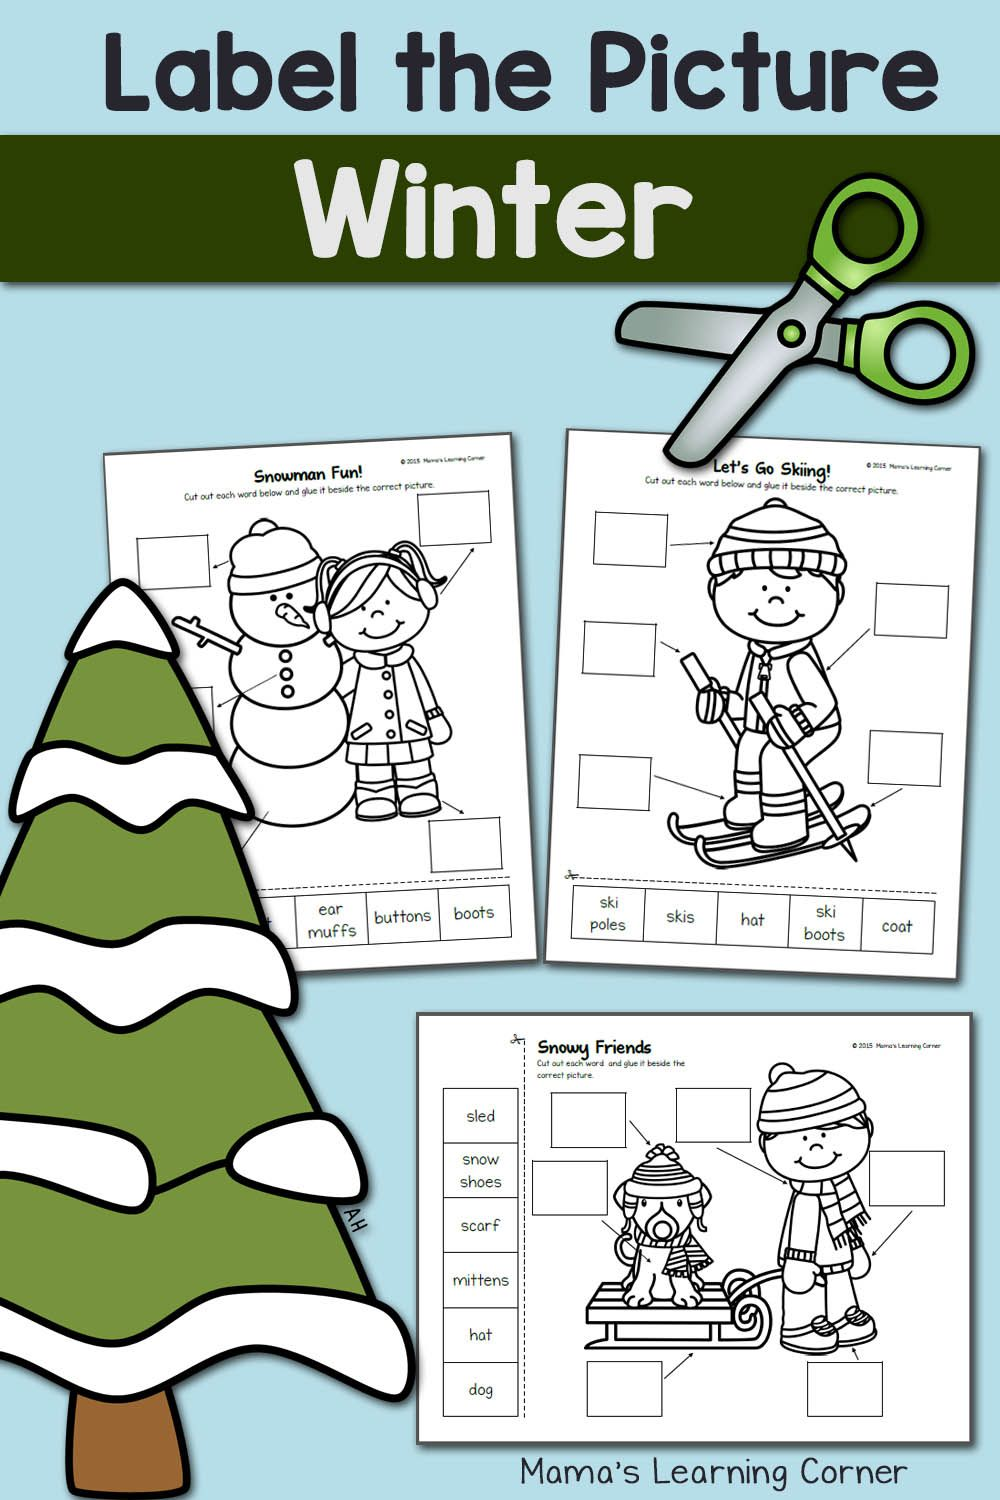 Winter Label the Picture: Cut and Paste! | Winter, Homeschool and ...